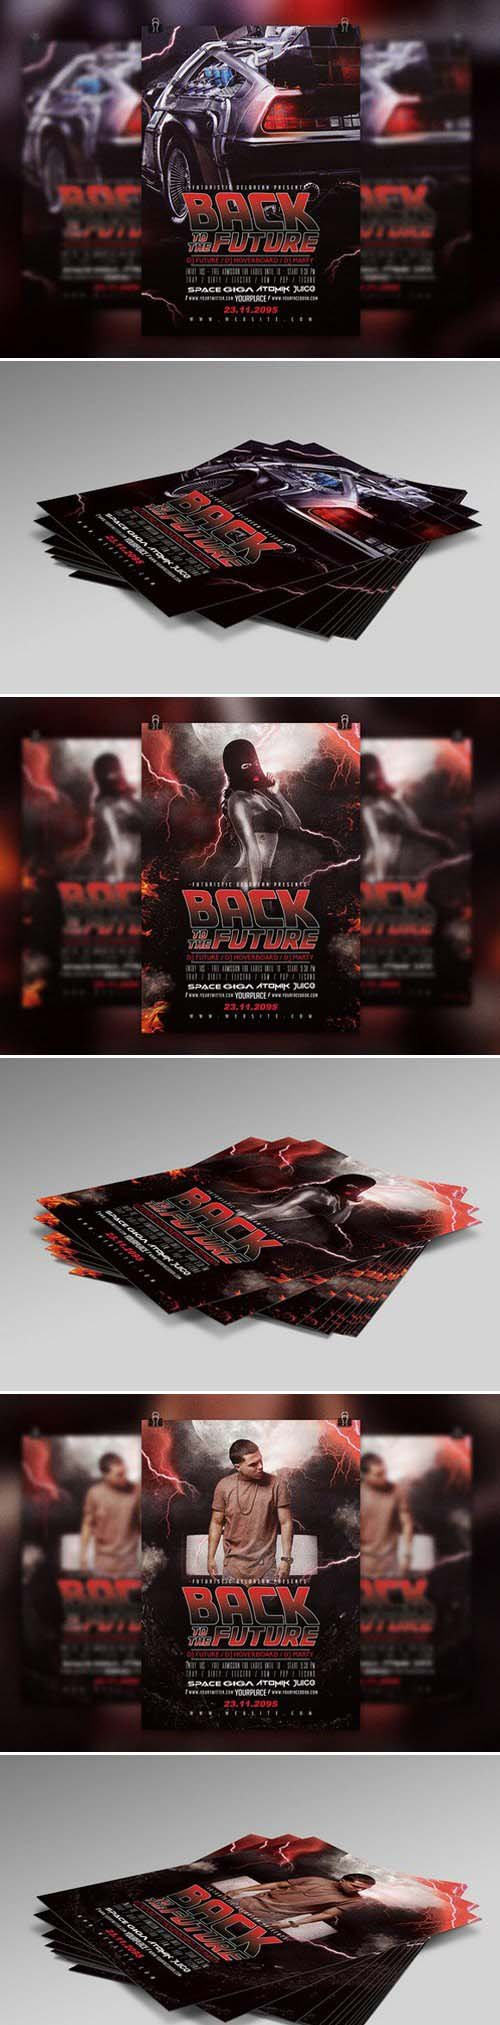 CM - Back To The Future | Flyer Template